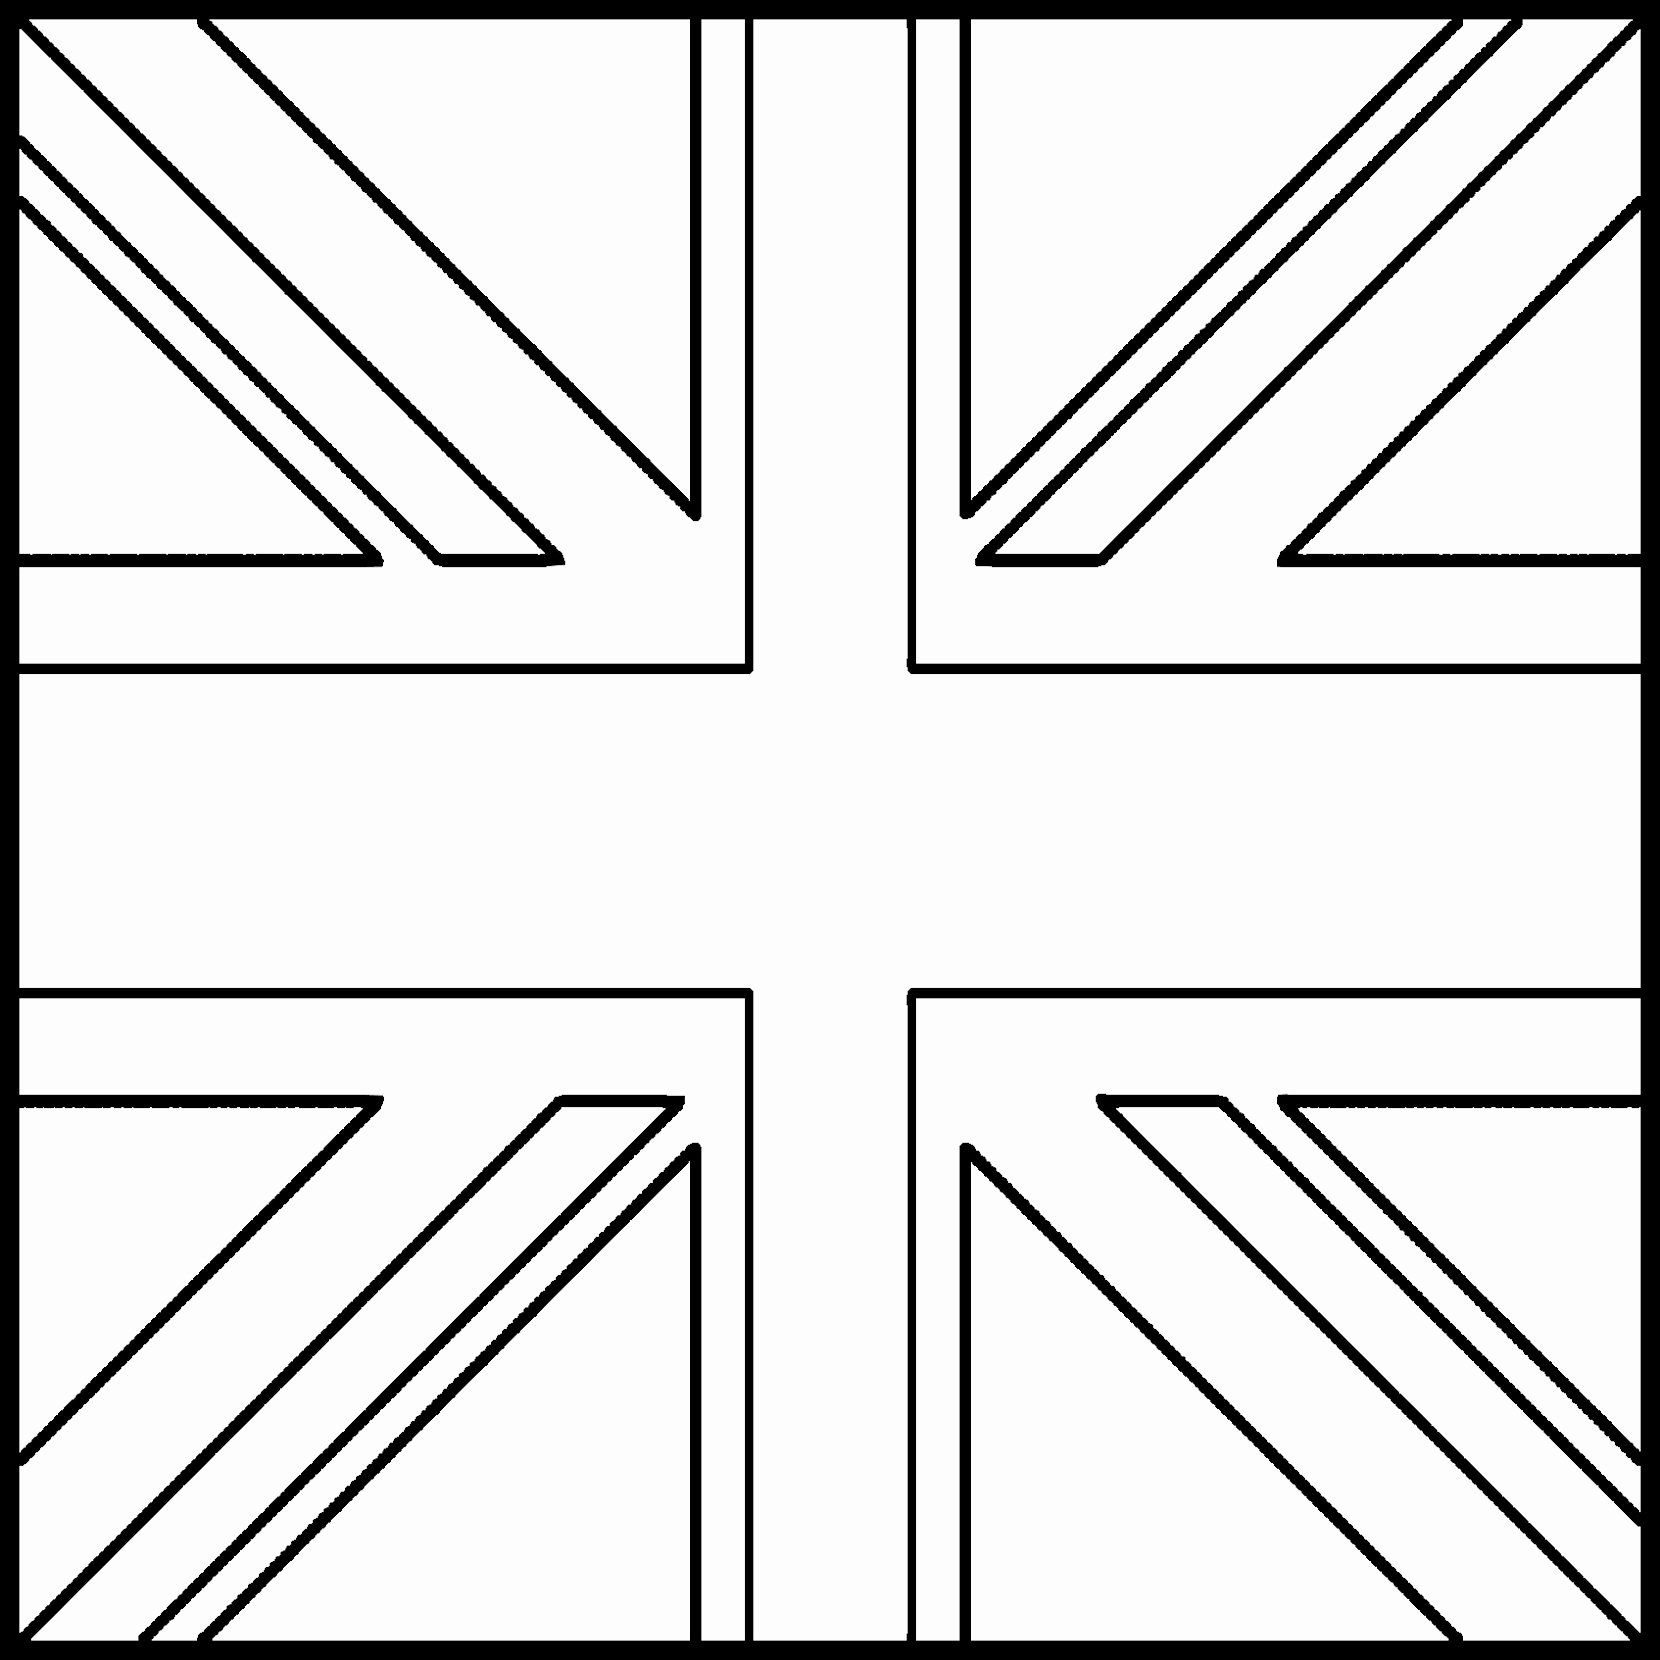 picture of union jack flag to colour the union jack to jack colour union flag of picture